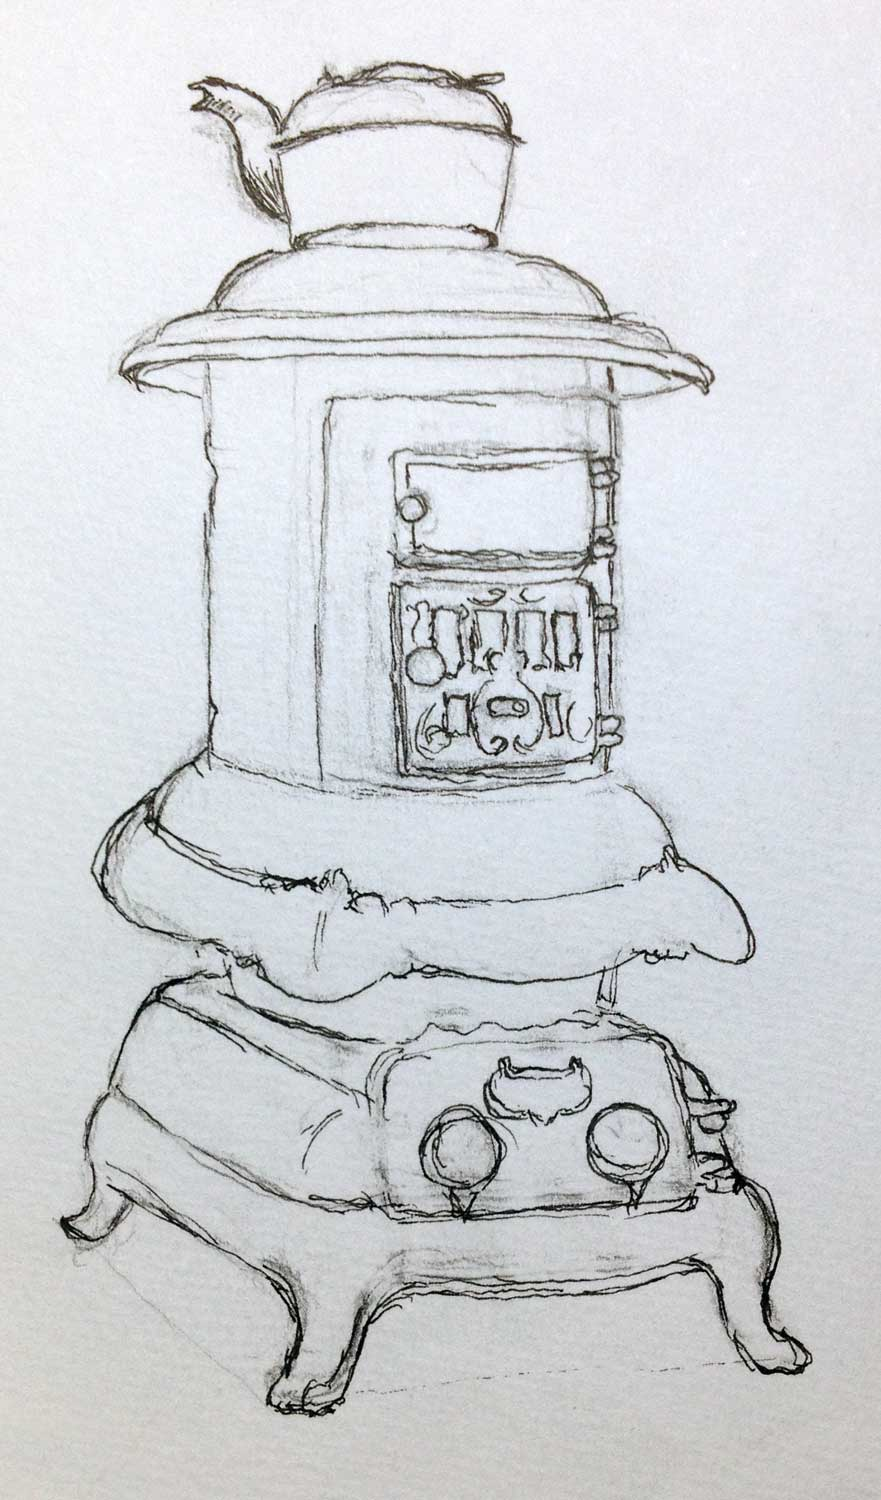 Day 7 It's been cold, here's a stove.